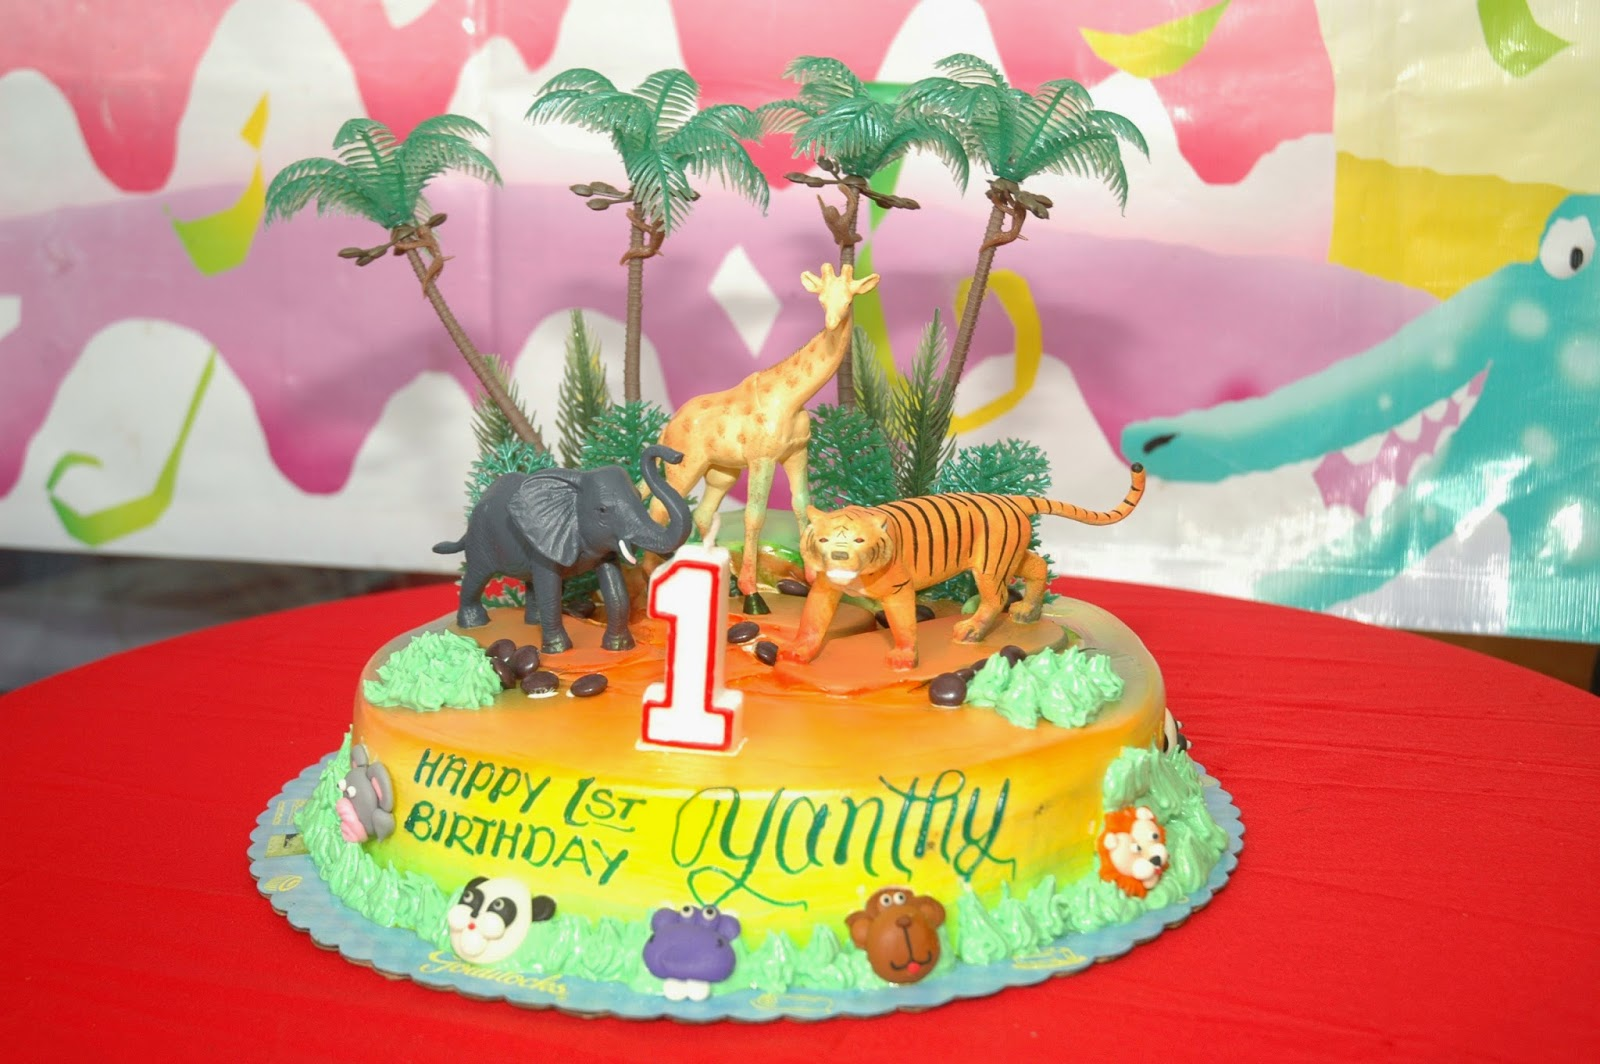 Goldilocks Birthday Cake For Baby Girl Image Inspiration of Cake